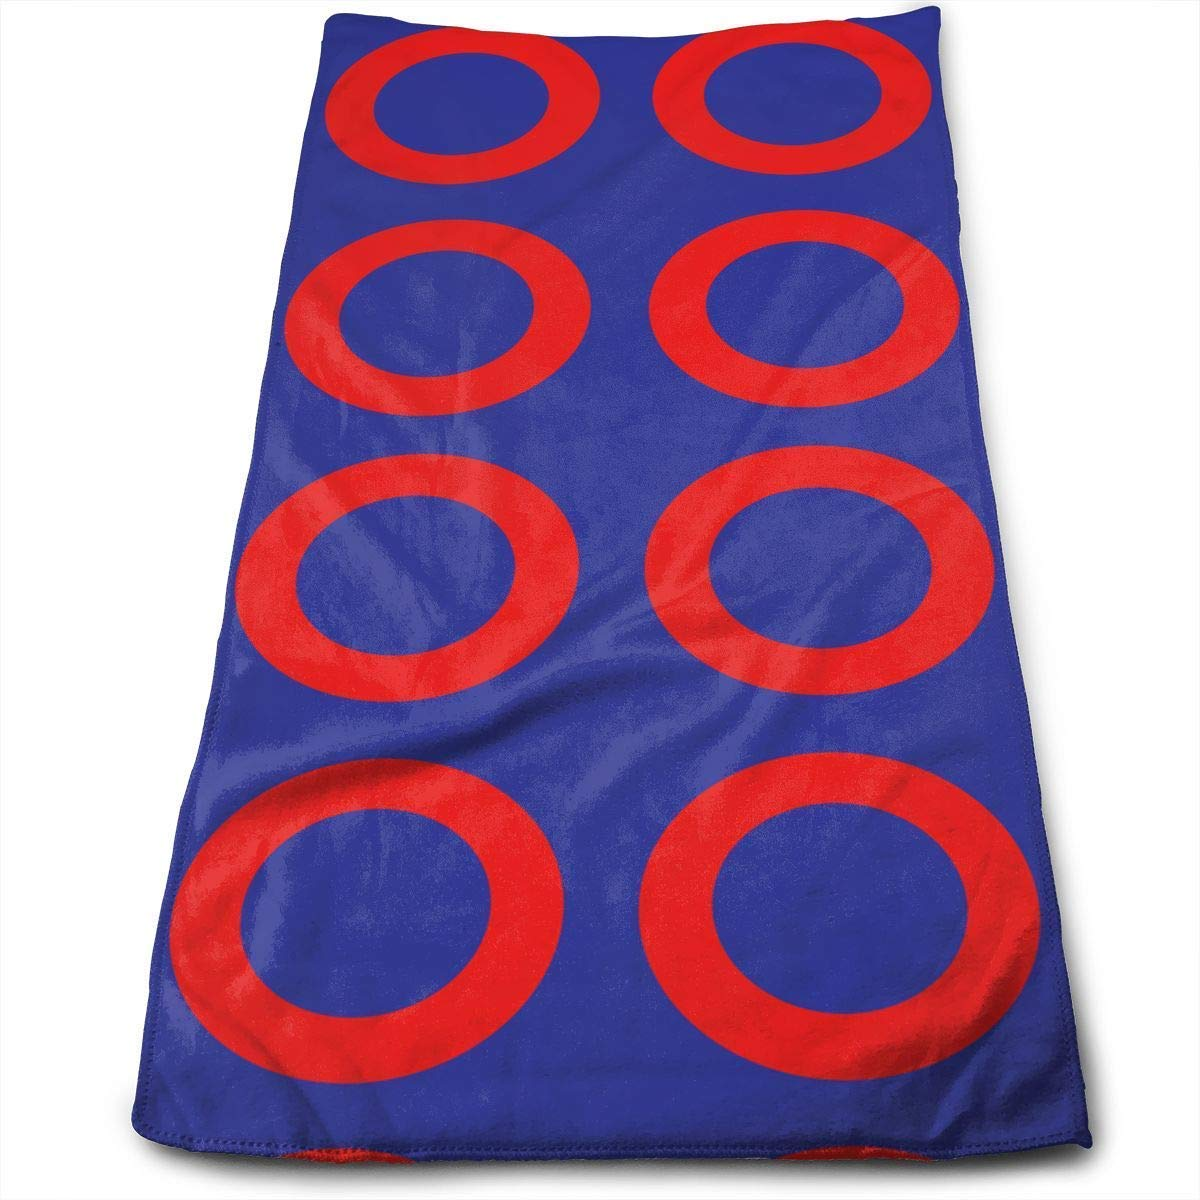 Proper Size! Quick Drying and Super Absorbent Technology Travels ewtretr Prime Torchons De Cuisine,Phish Sports Fabric 1787 Microfiber Beach Towel Large 11.8X27.5 Towels XXL Best for Outdoor